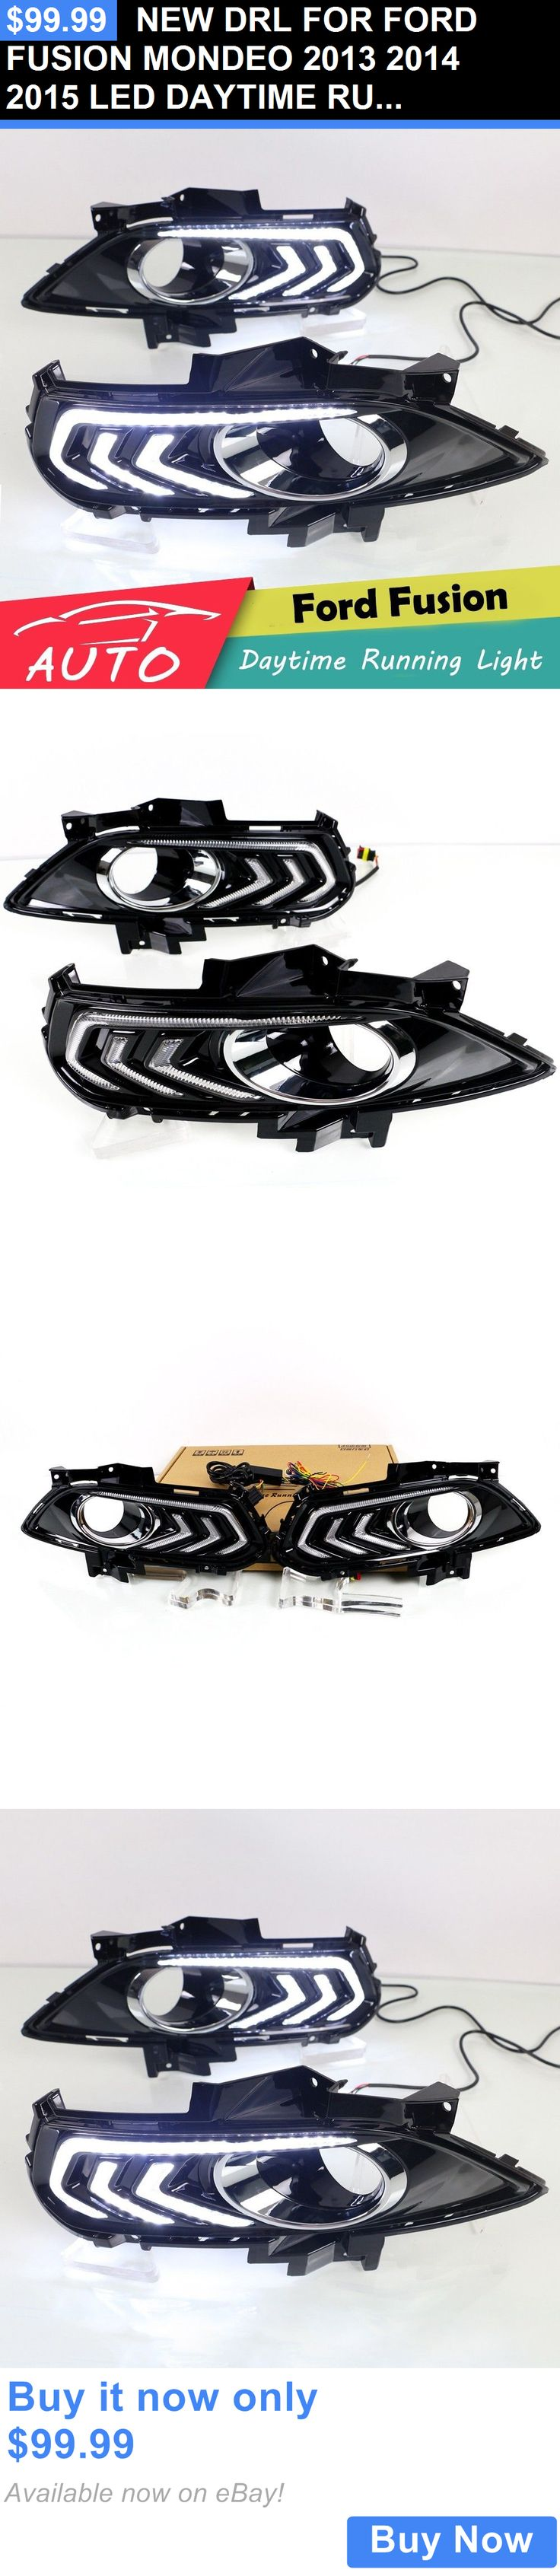 Motors Parts And Accessories: New Drl For Ford Fusion Mondeo 2013 2014 2015 Led Daytime Running Light Fog Lamp BUY IT NOW ONLY: $99.99